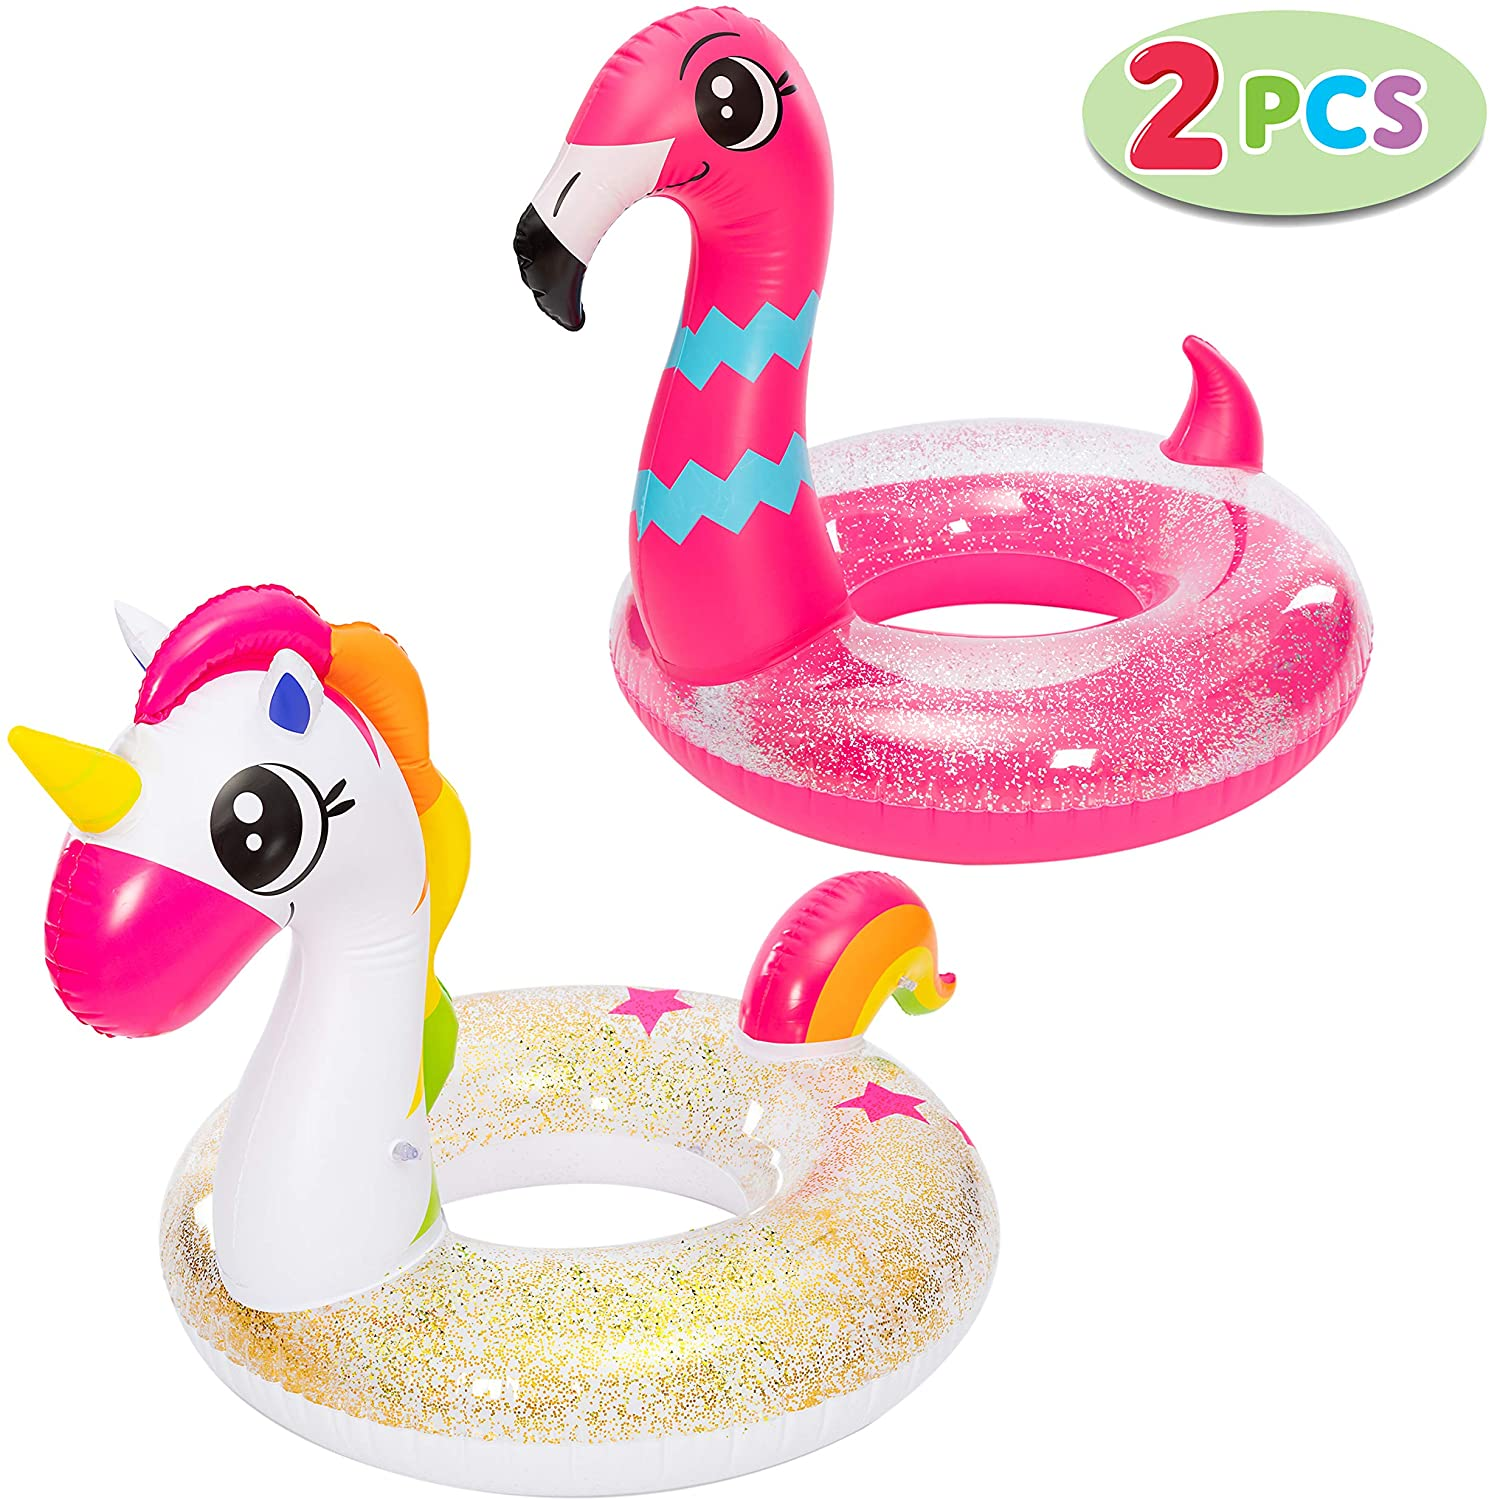 Bathtub Floaties Accessories and Toys Perfect Summer Gift for All Ages Flamingo Family Bath Set